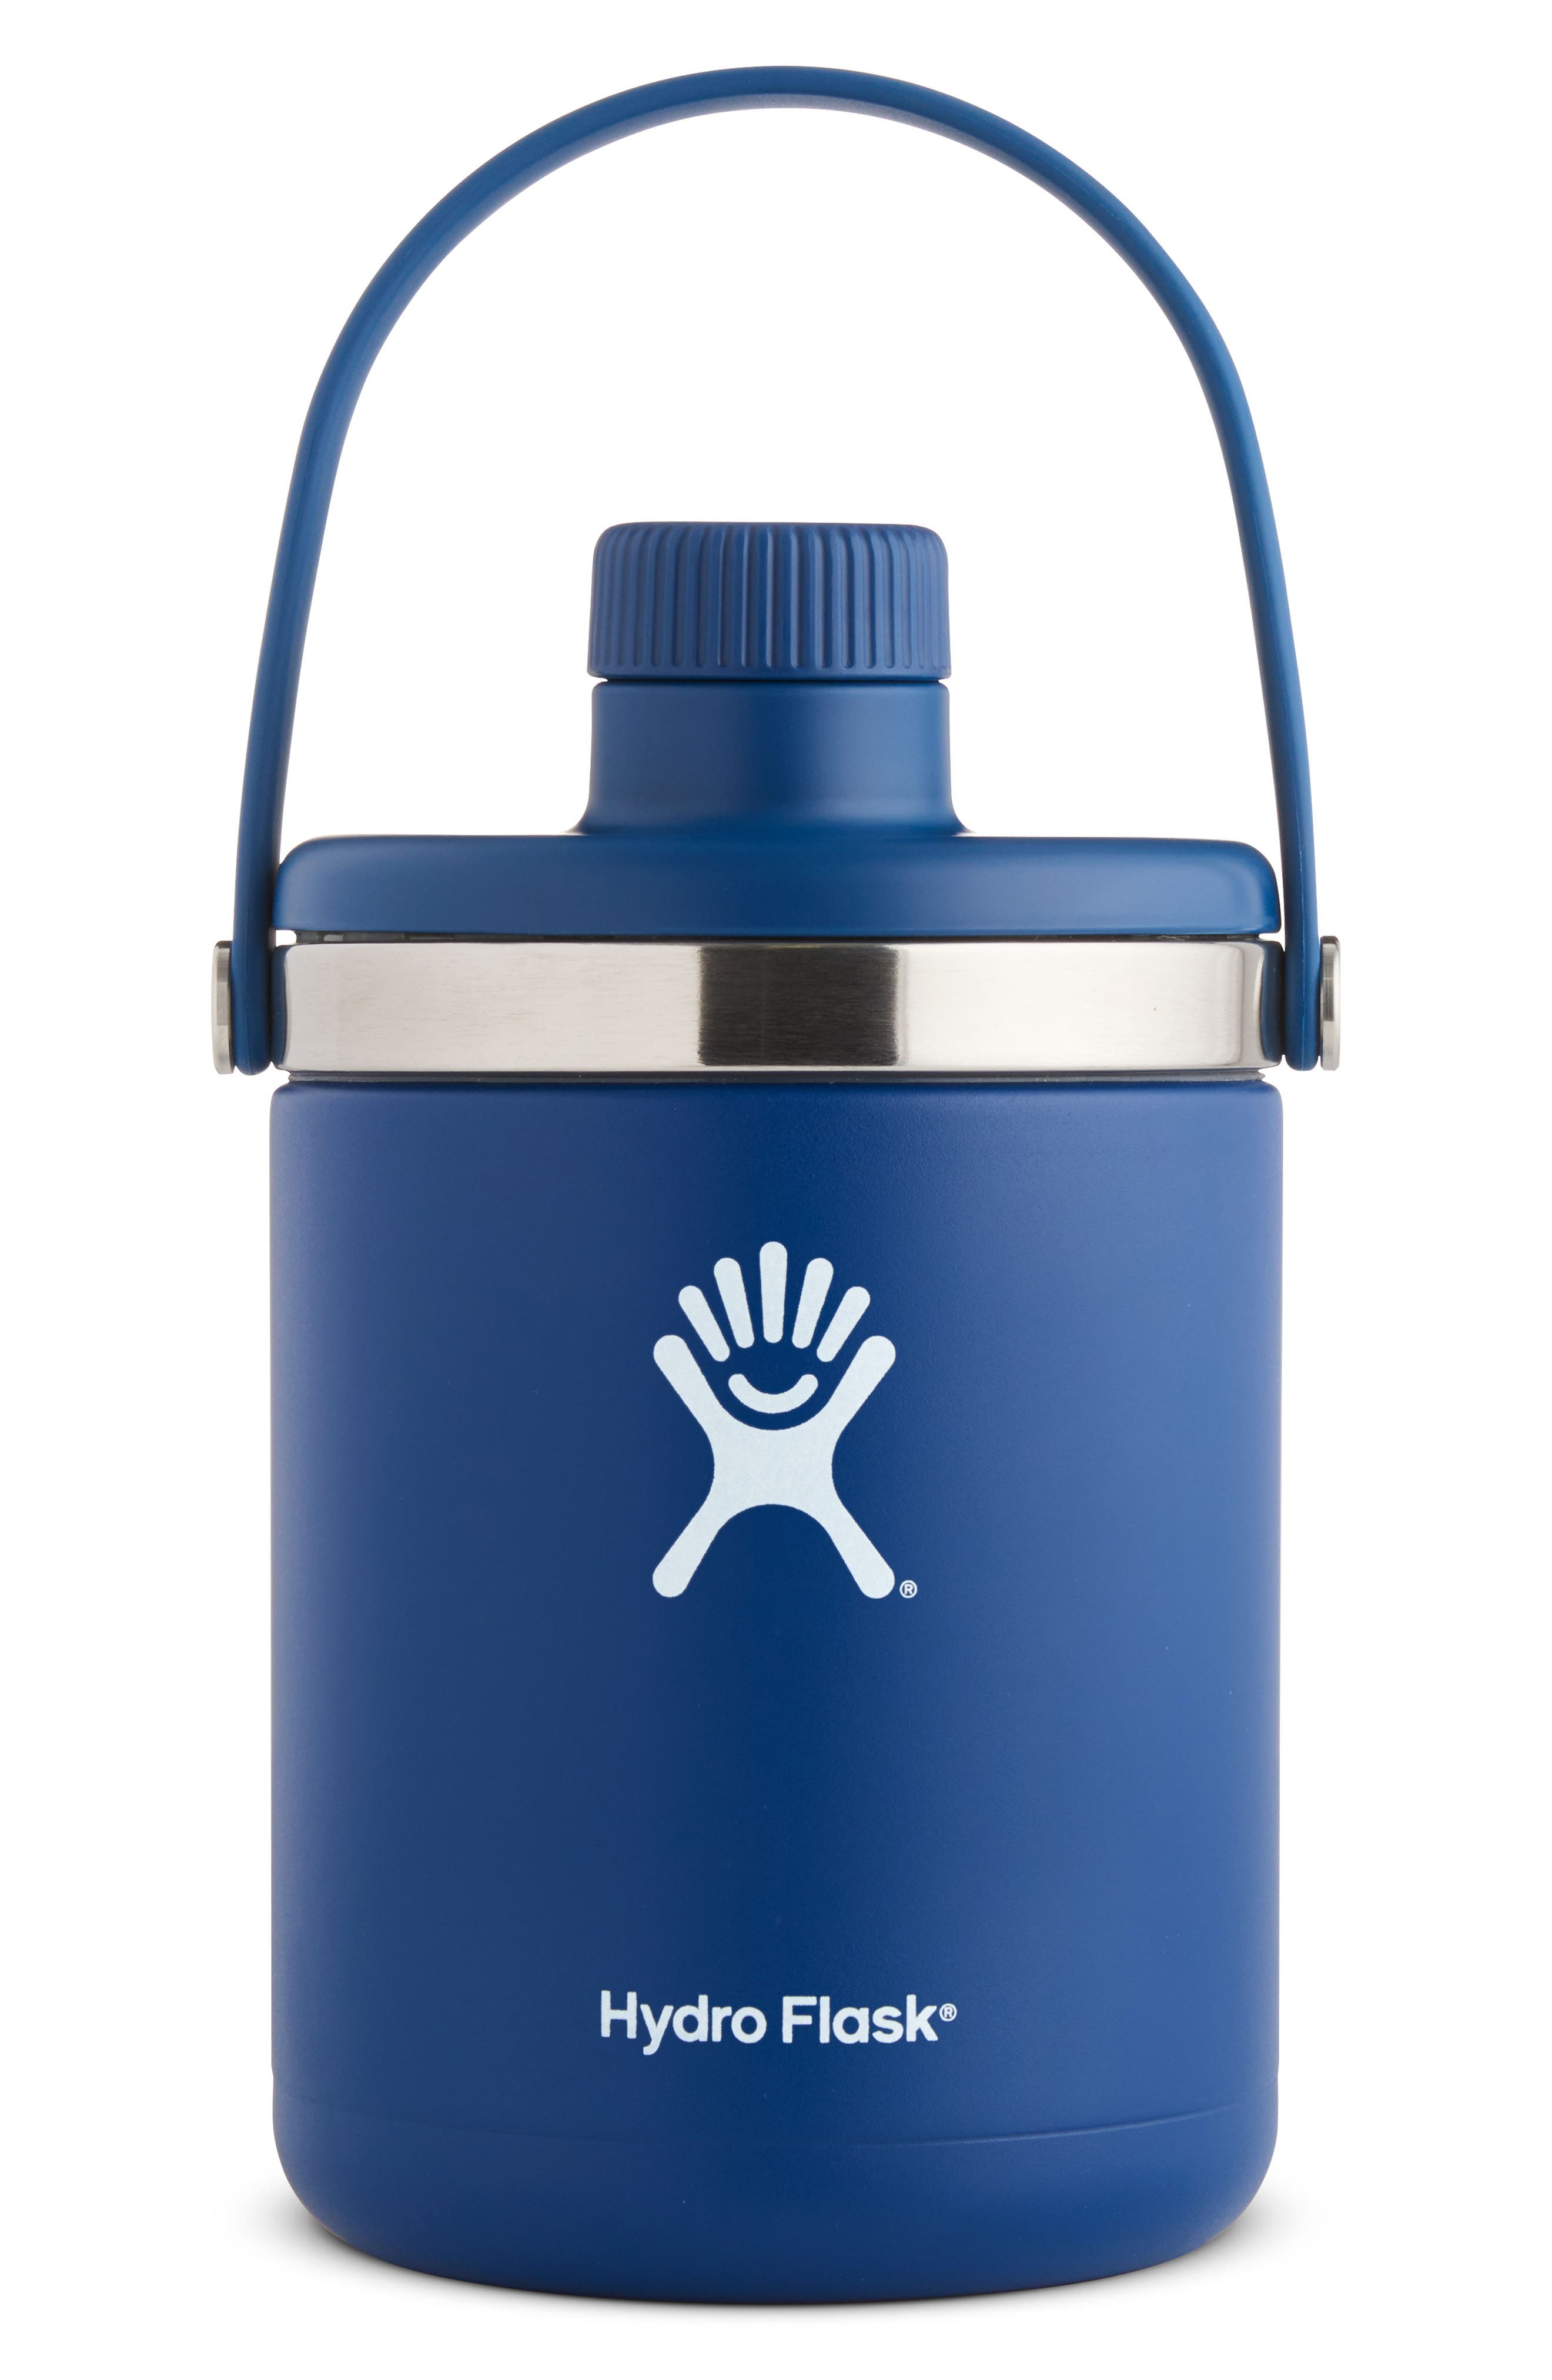 Hydro Flask Clothing